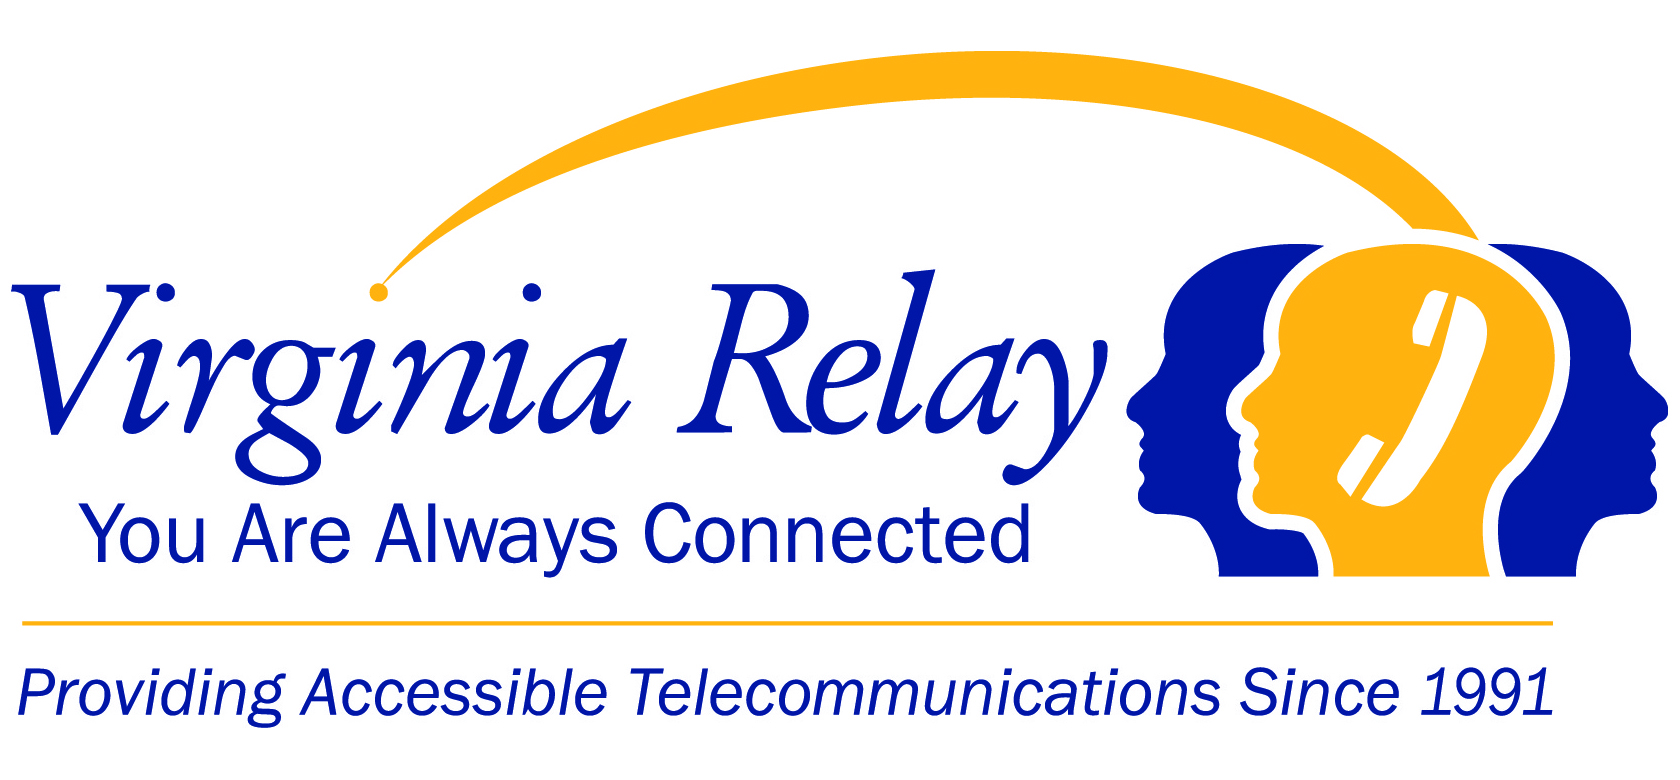 Virginia Relay (Gold)